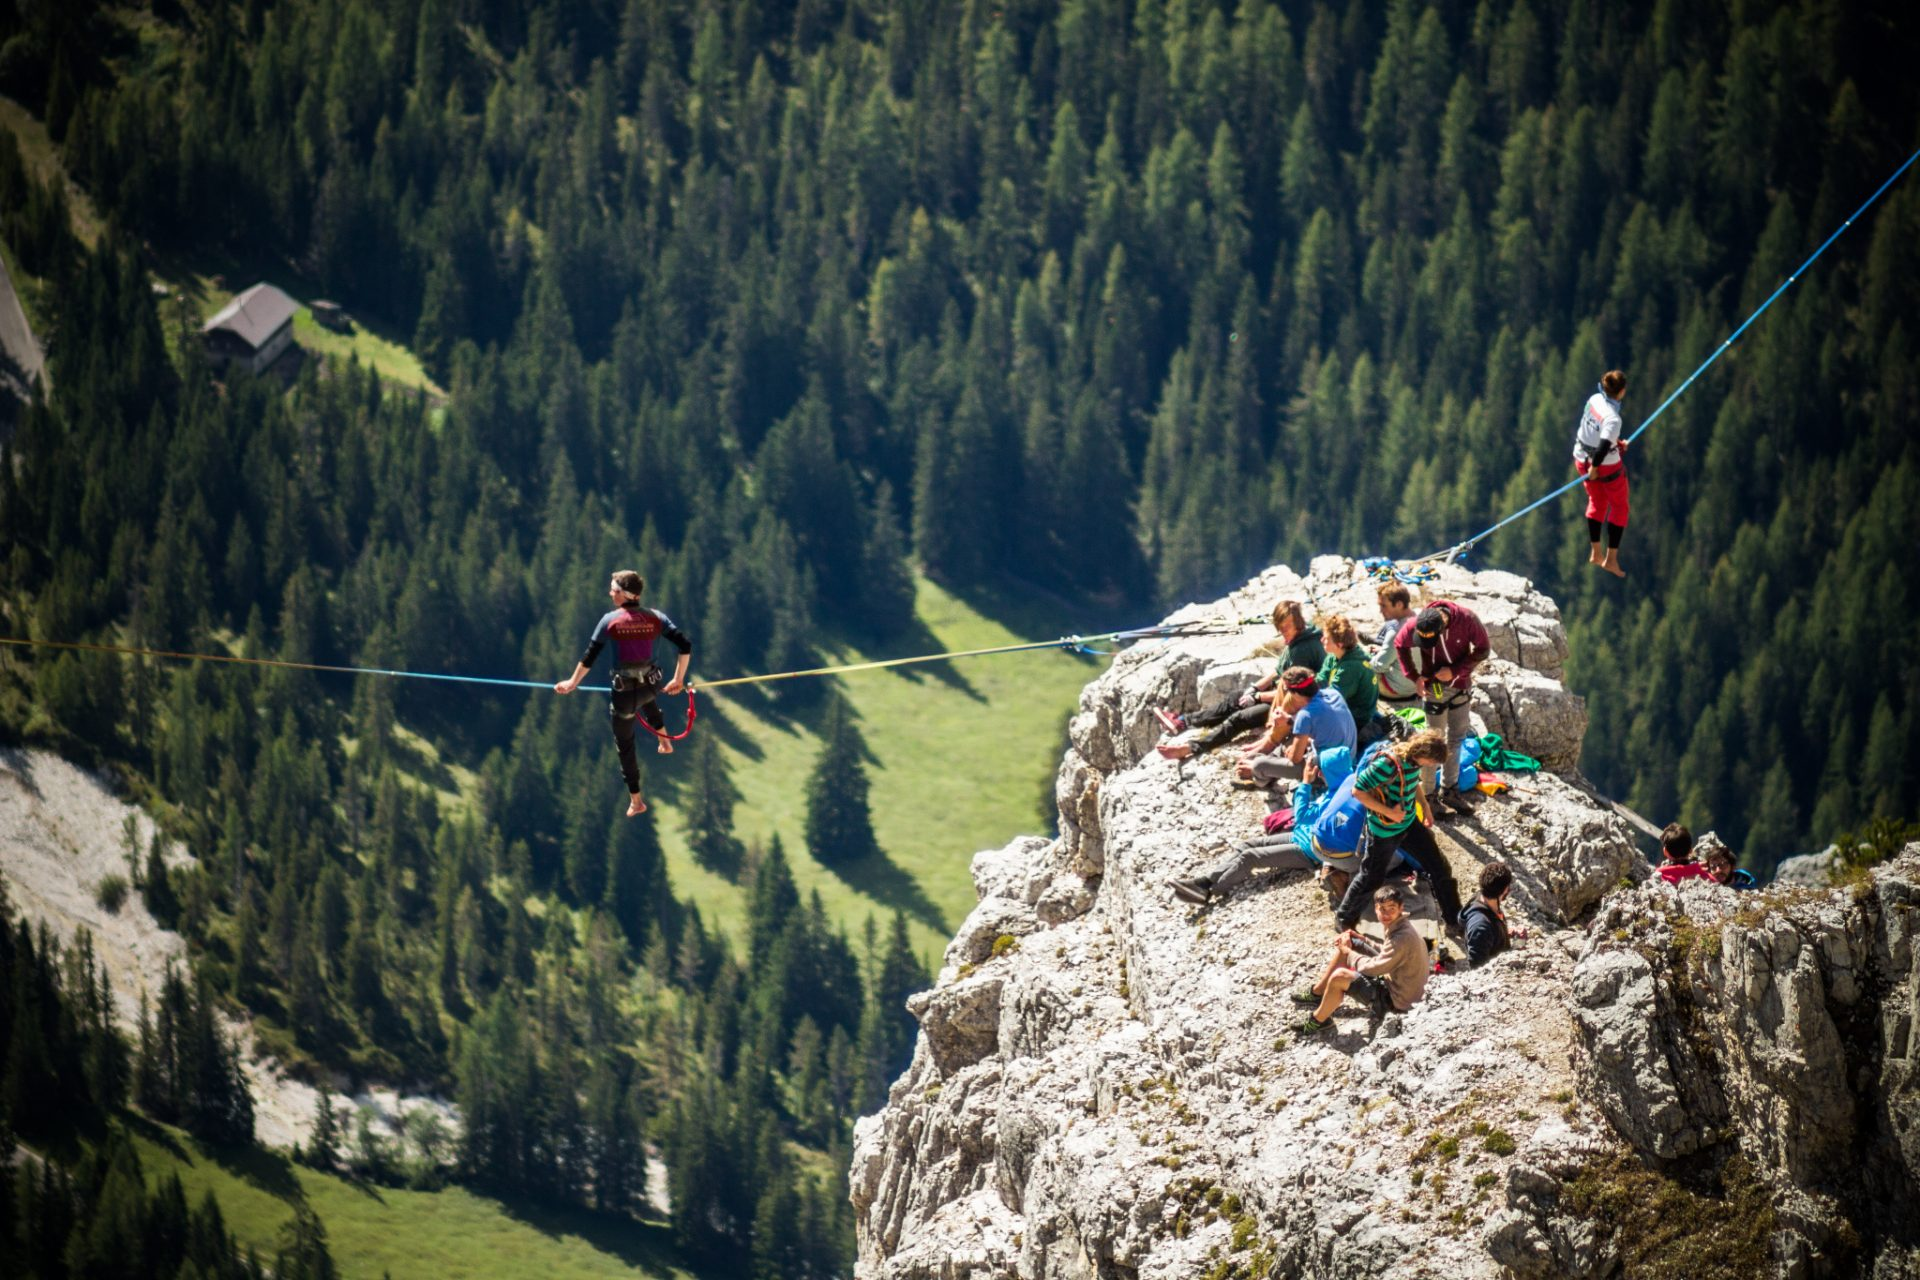 orosz_adam_outdoorinhales_highline_meeting_2014-monte_piana_dolomites_italy_17